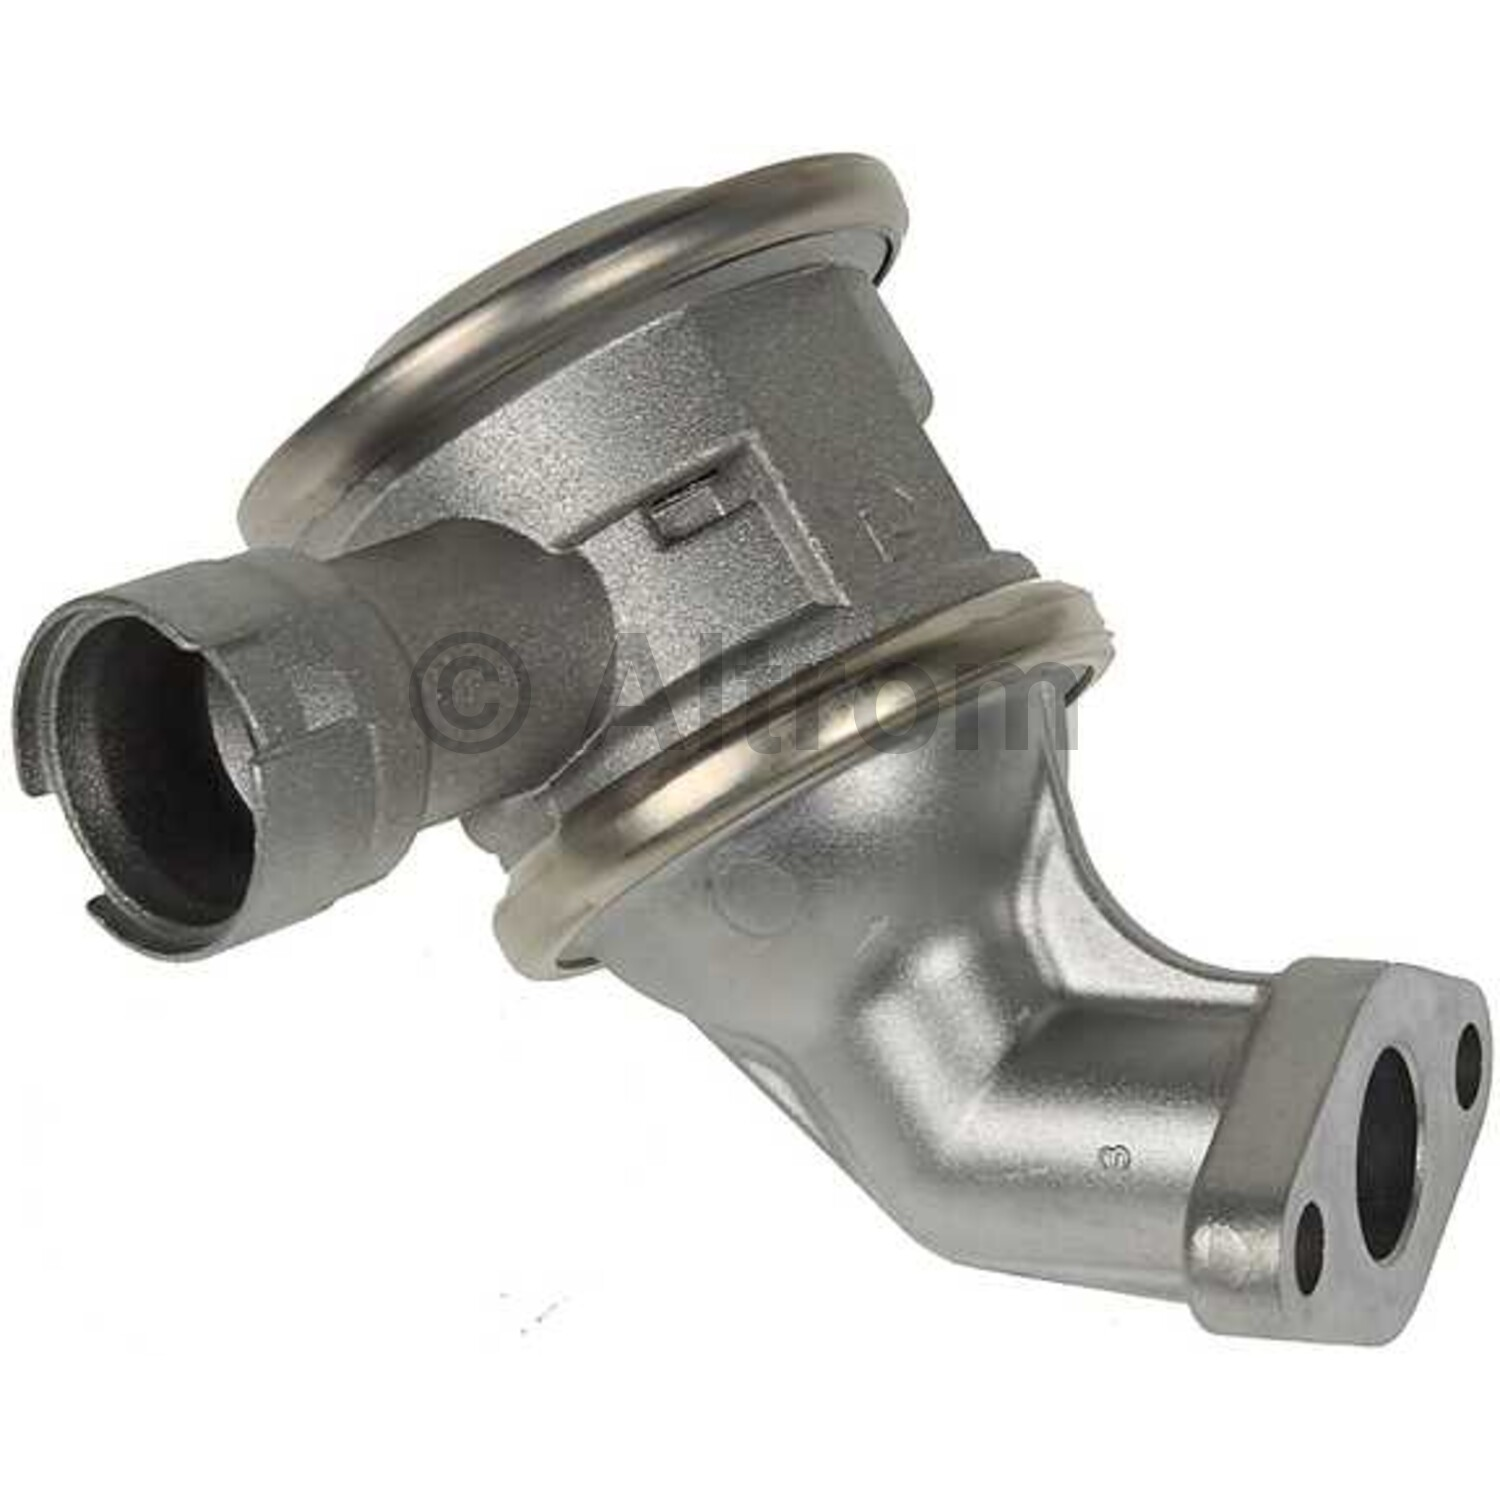 Secondary Air Injection Pump Check Valve